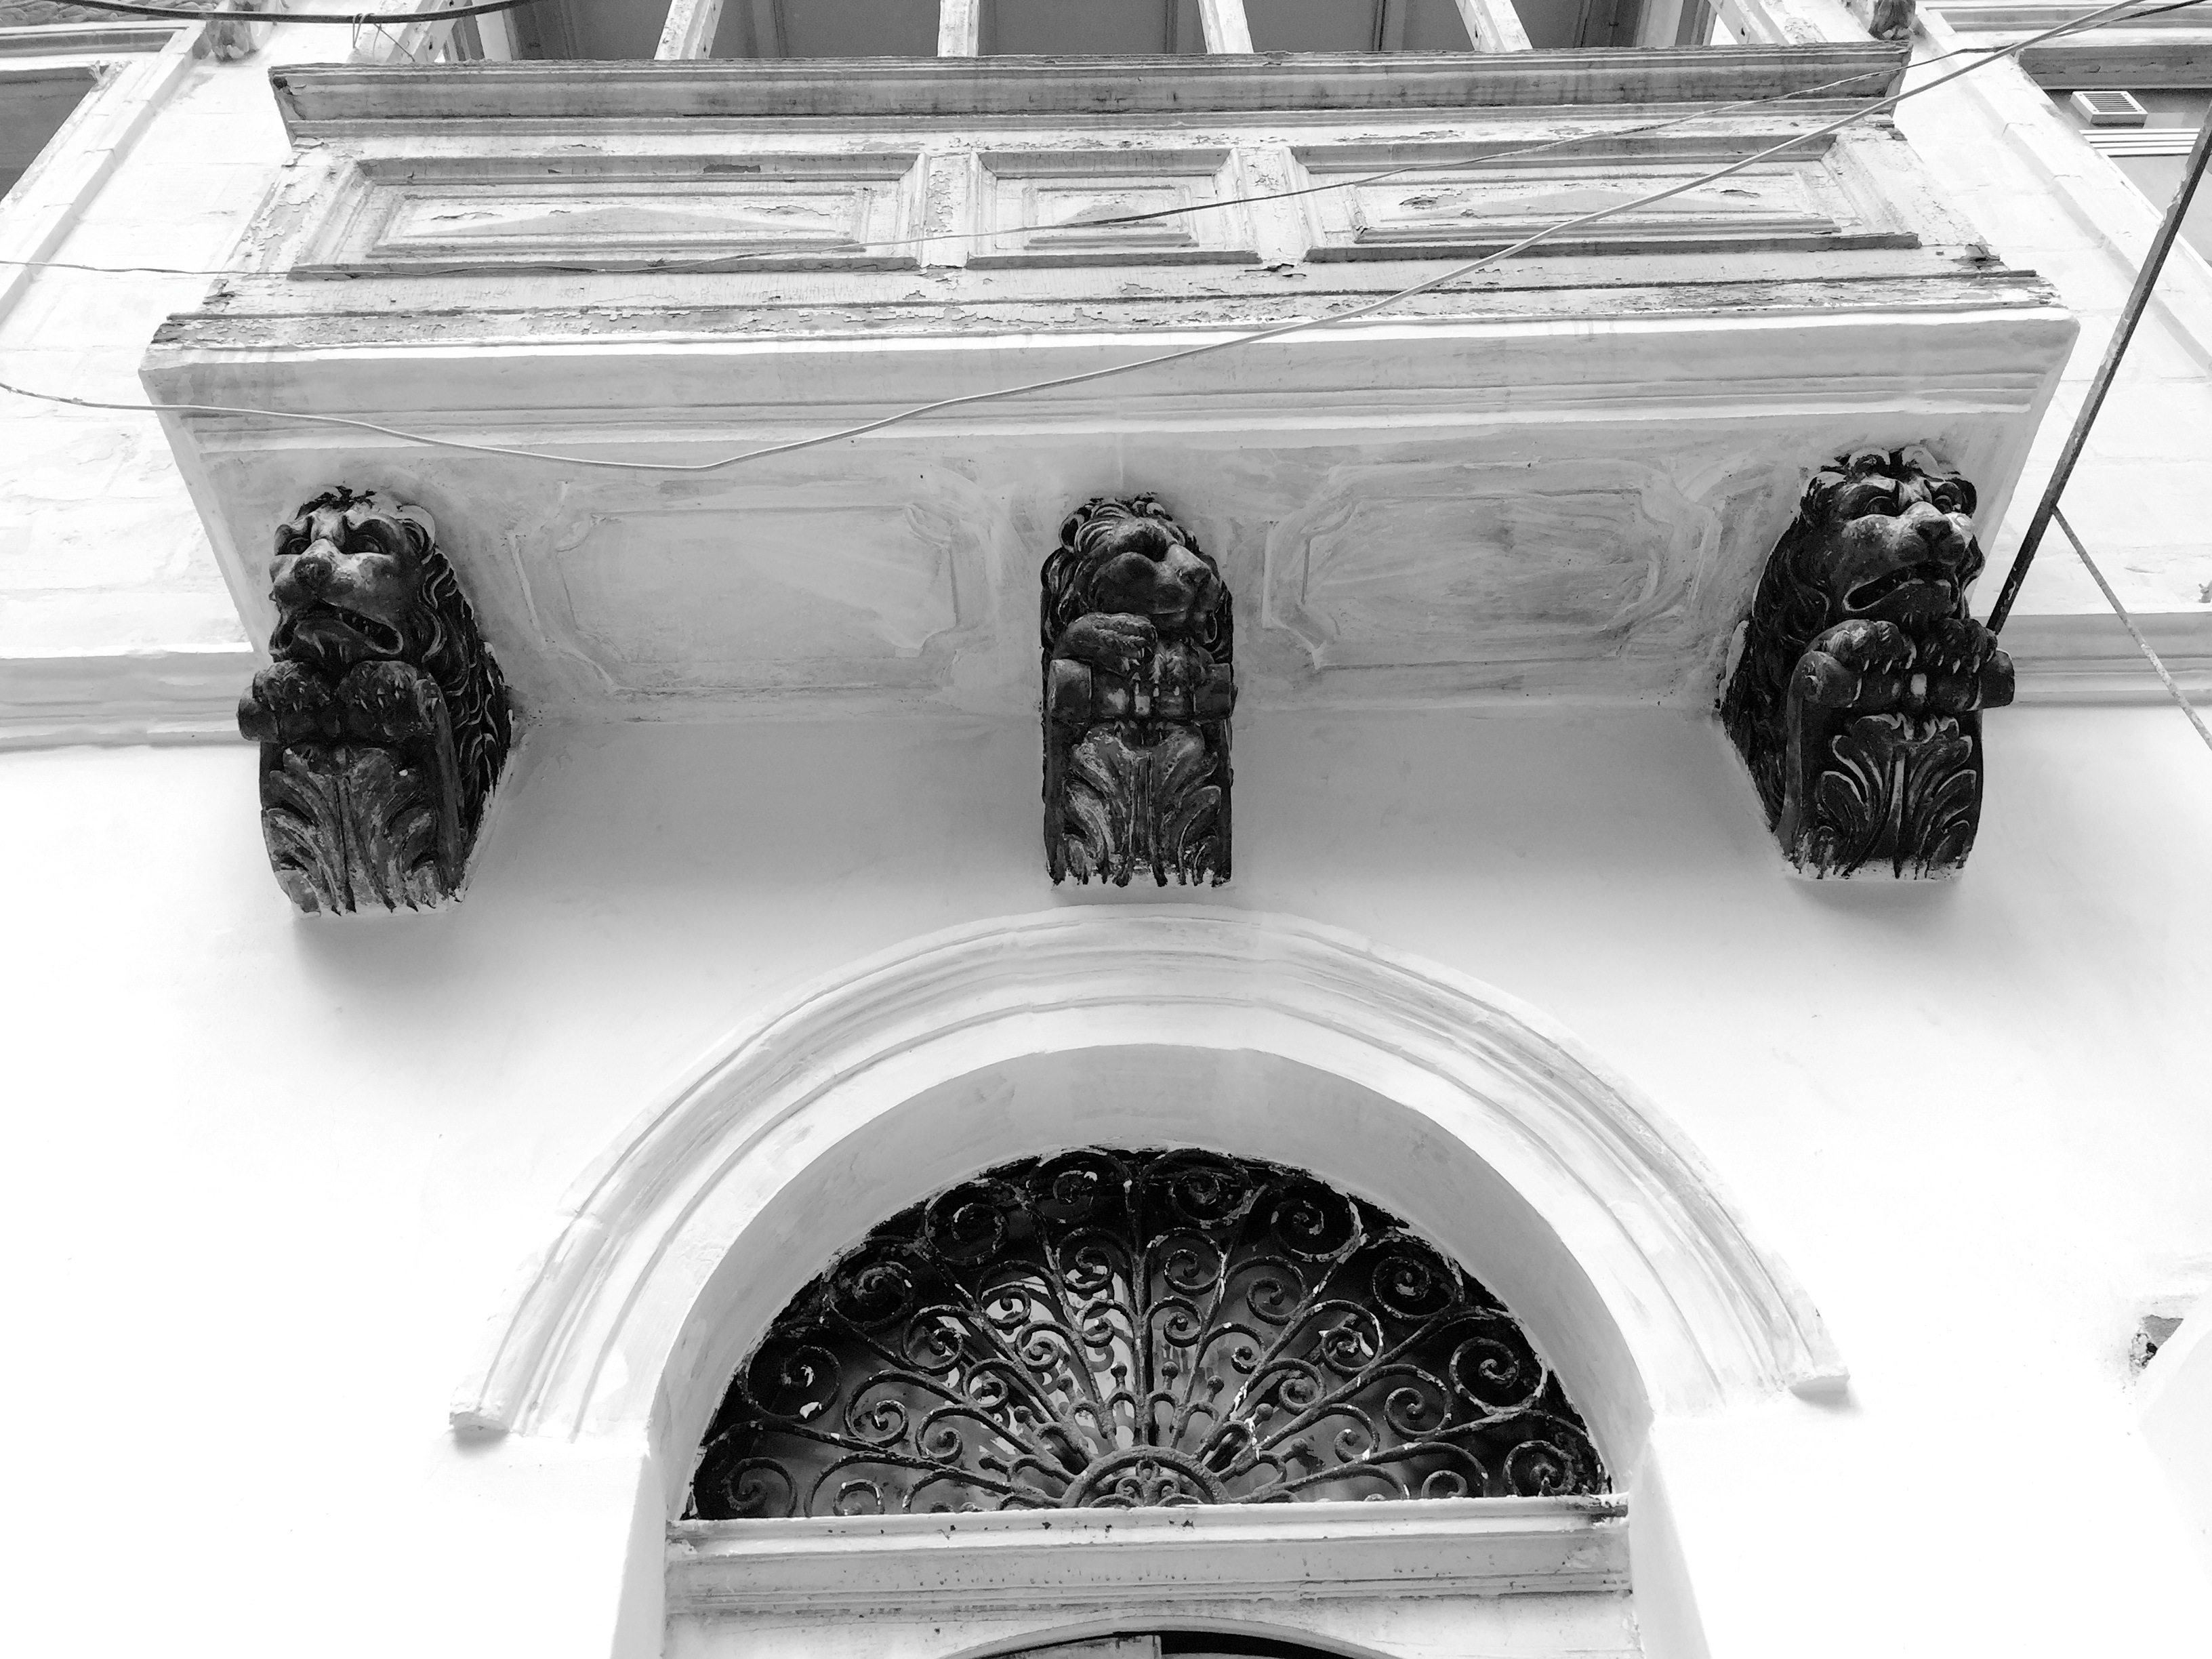 Timber balcony decor: lions and caryatides